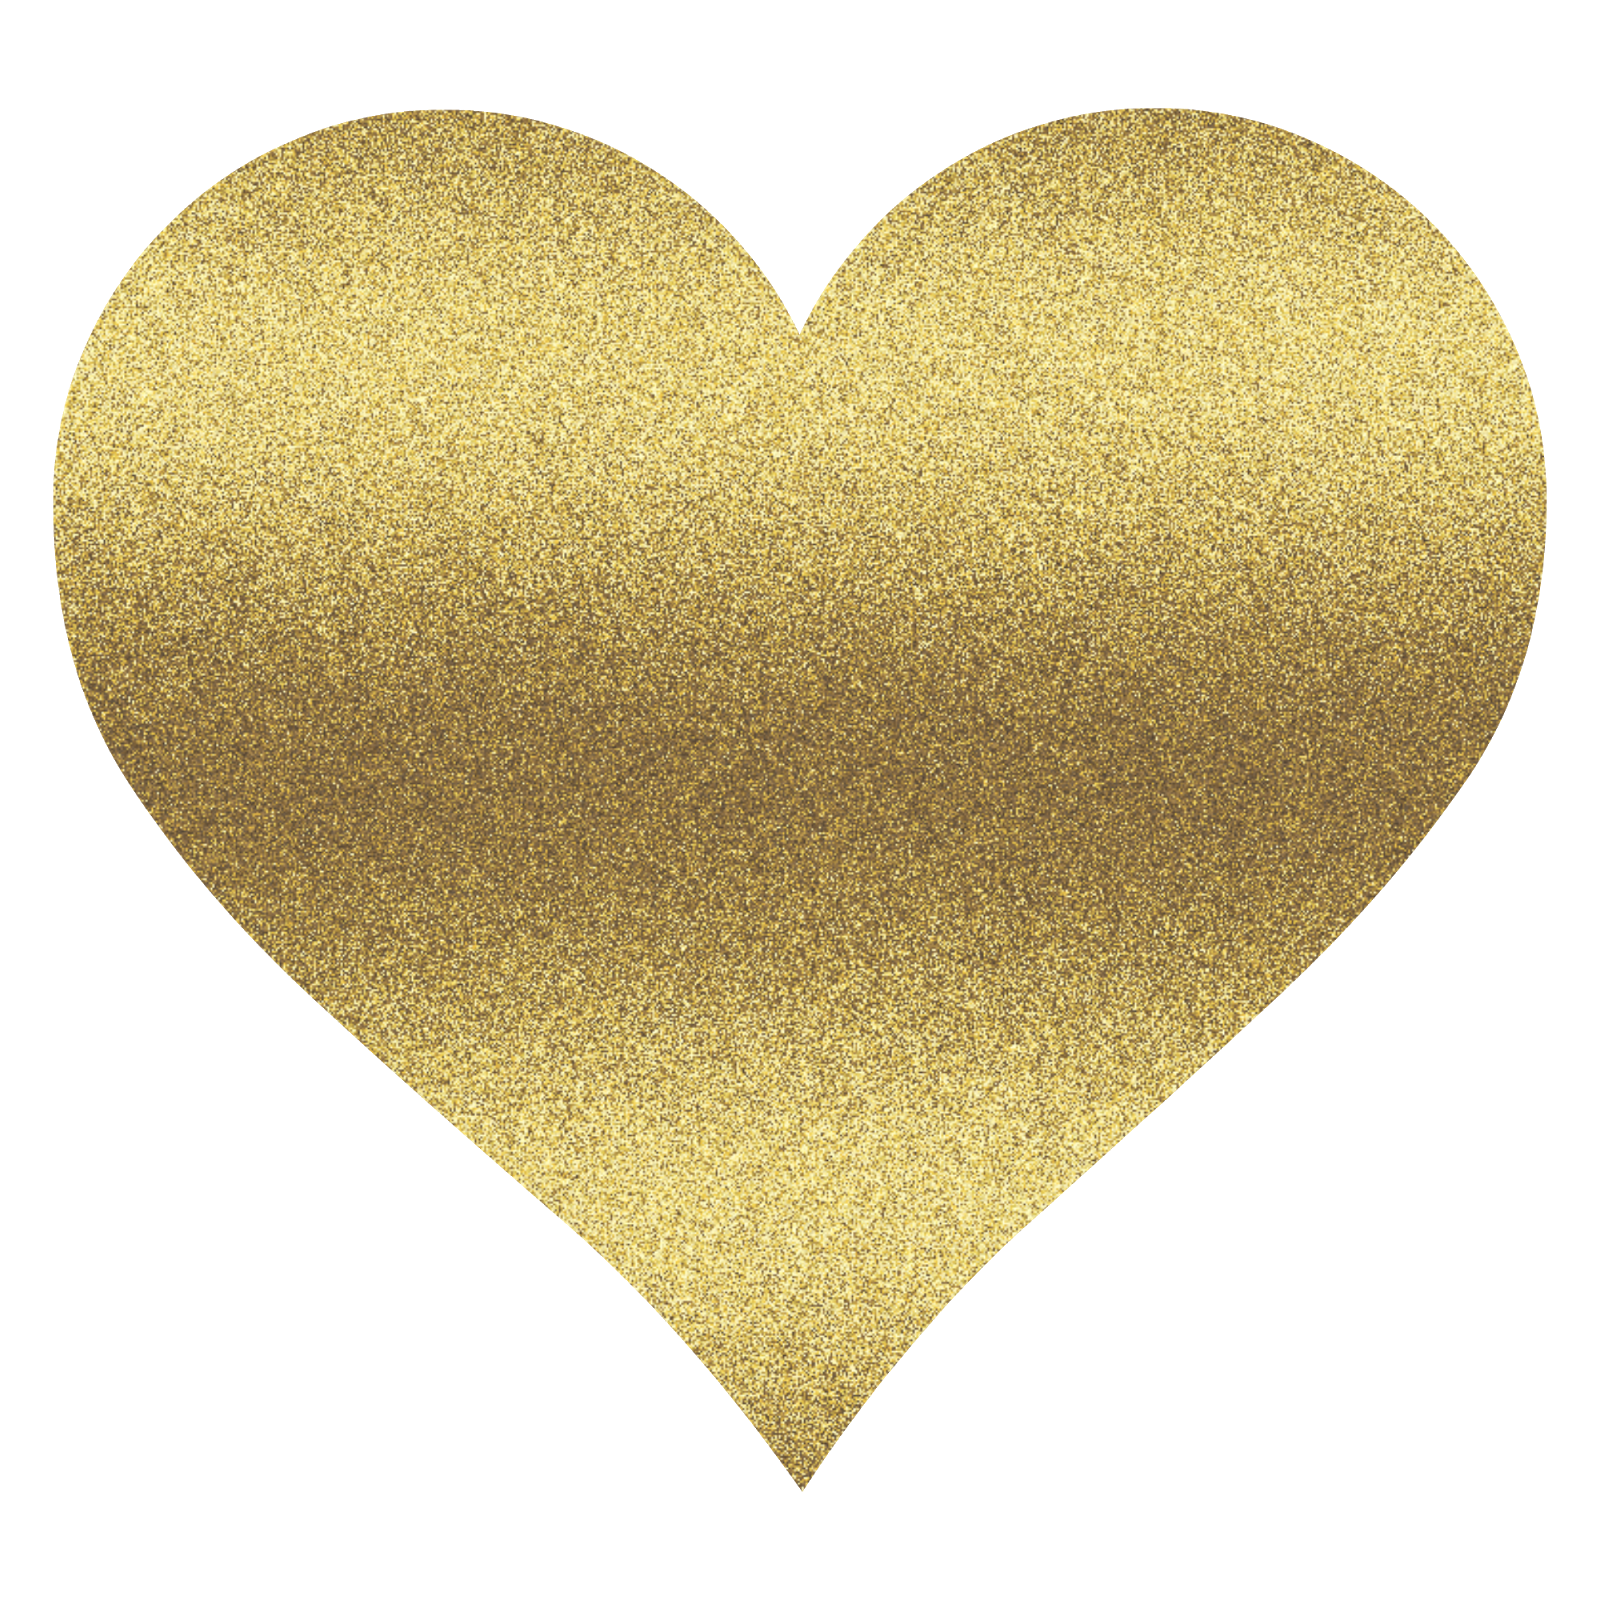 Gold heart png transparent. Glitter clipart glittery